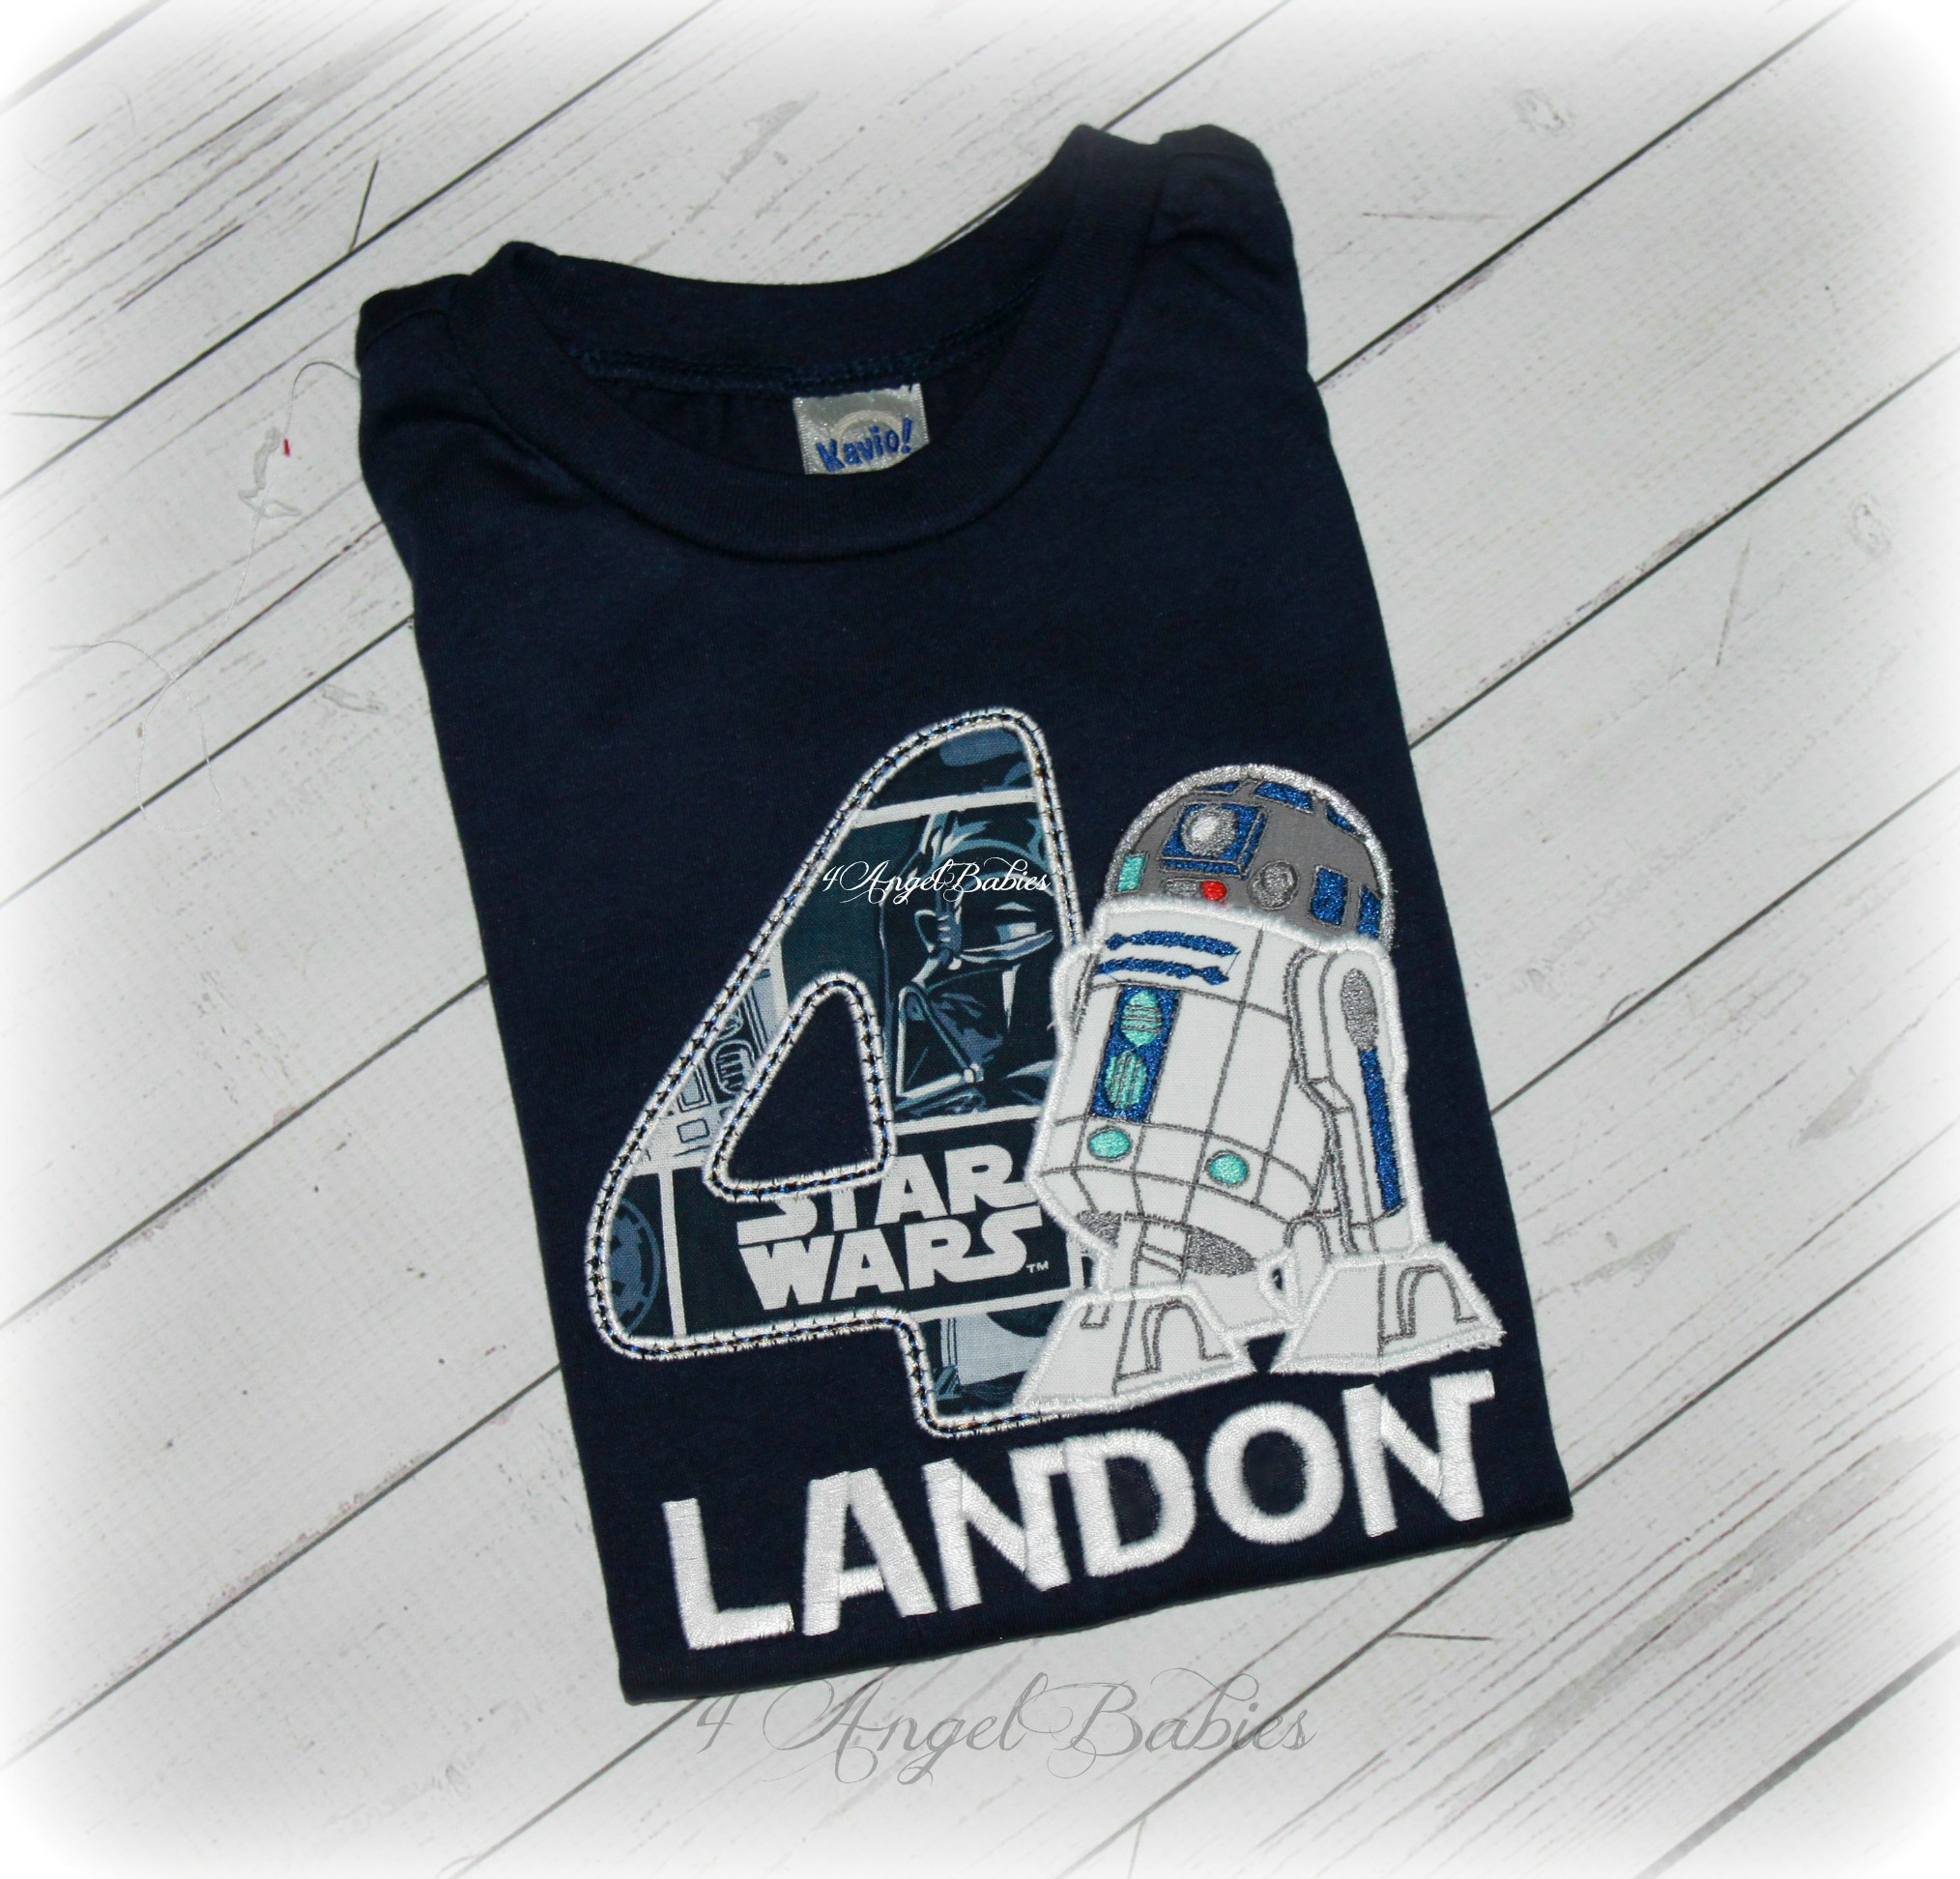 Star Wars R2D2 inspired Robot Boys Birthday Shirt or Top